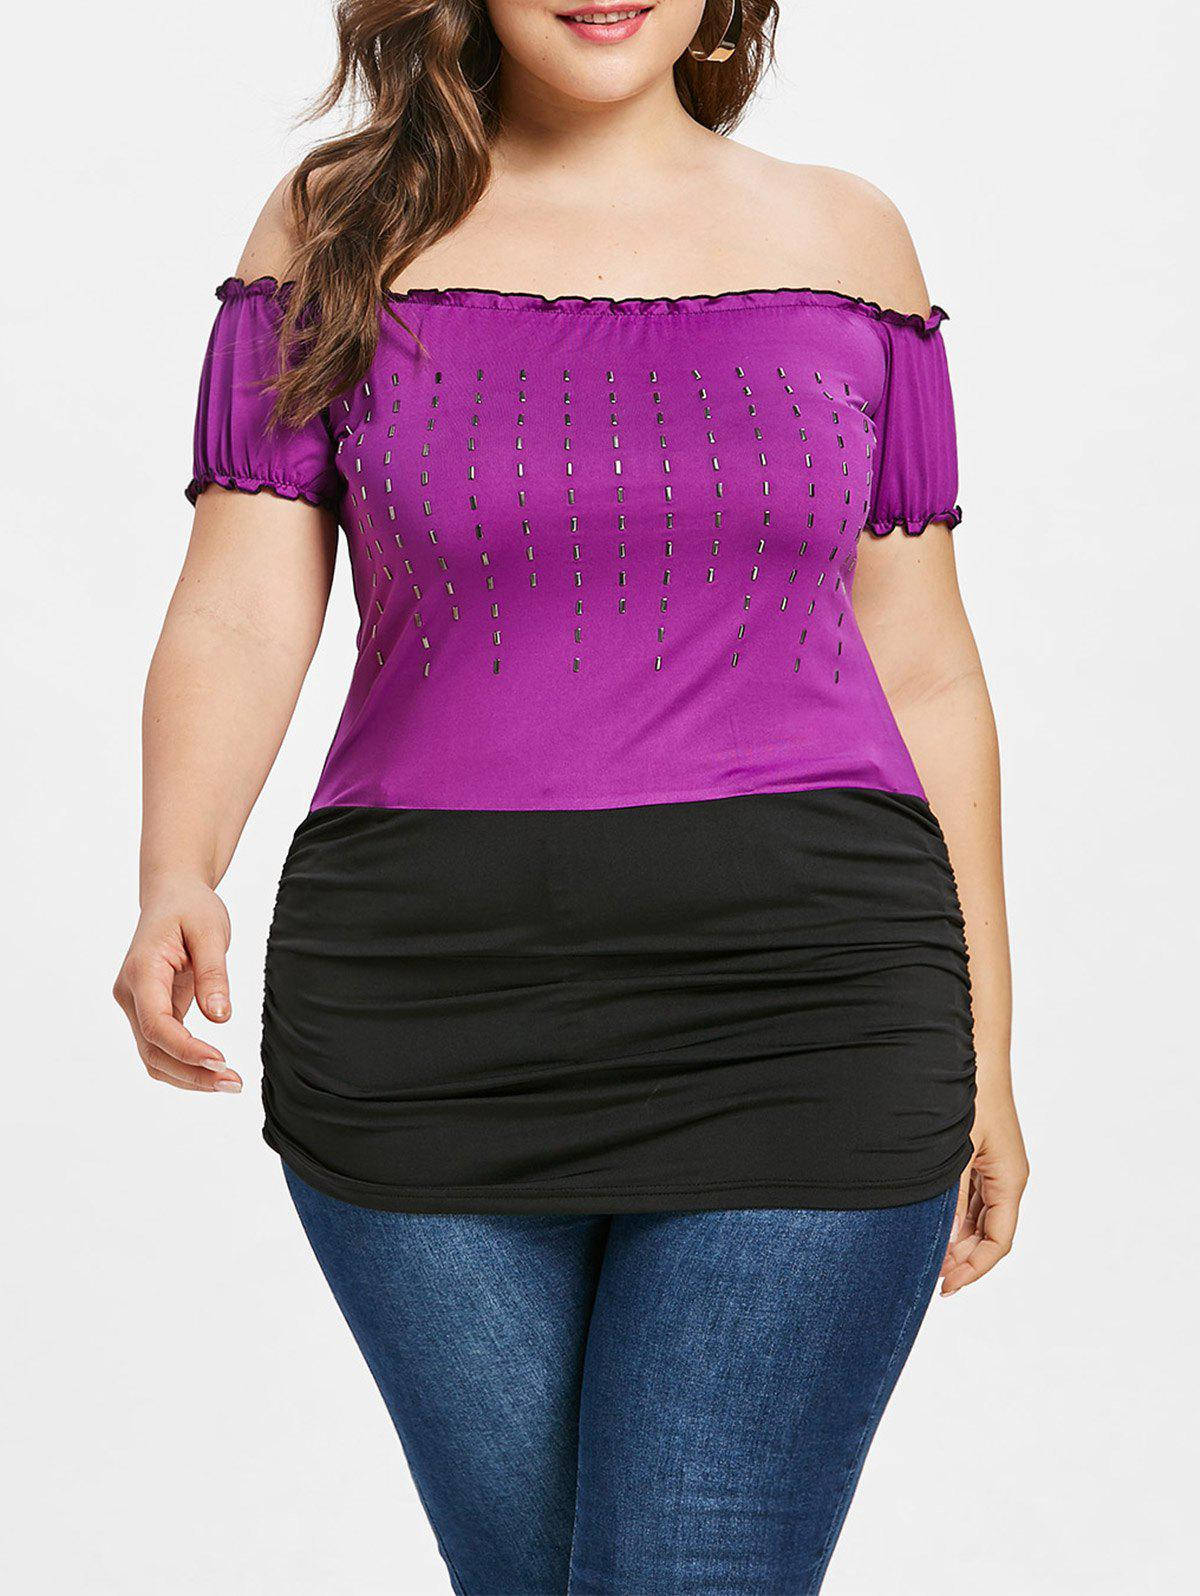 Plus Size Two Tone Embellished T-shirt plus size v neck two tone t shirt